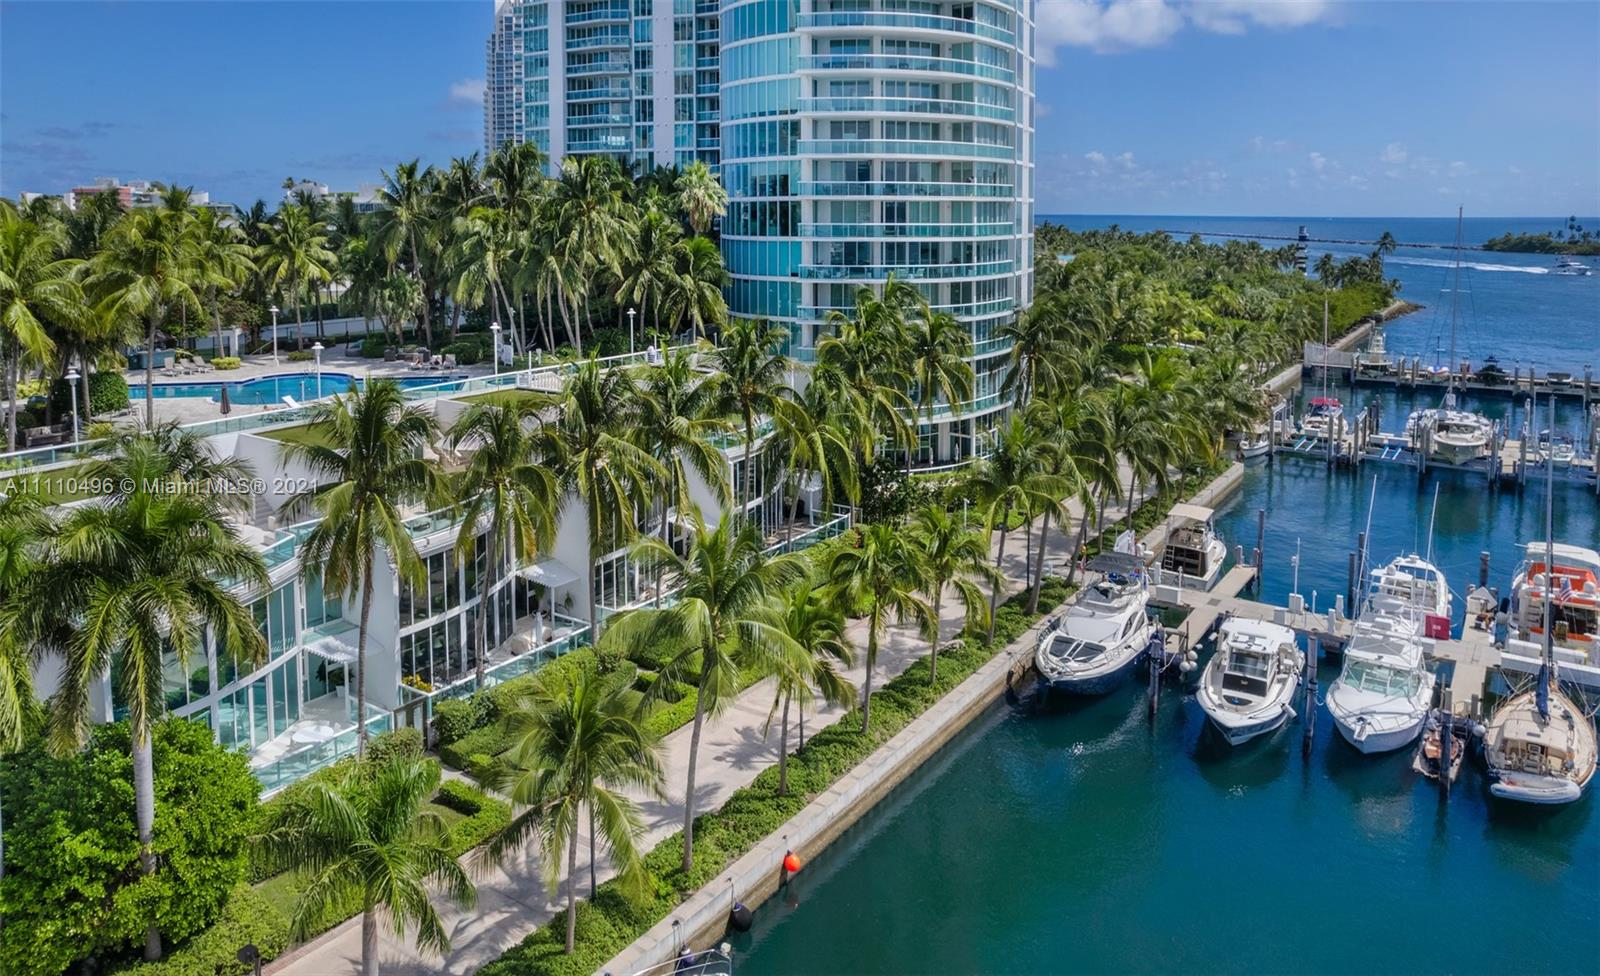 Own this unique Waterfront townhome located South of Fifth, Miami Beach's most prestigious residential address. A 3 BR/4.5 BA marina townhouse that lives like a home, with the easy maintenance & amenities of a condo. Dramatic 20-ft ceiling entry, gorgeous water views, private 2 car attached garage & tons of storage. A few steps to the Miami Beach Marina, Dock your boat right outside your front door! ENTERTAIN IN STYLE on 1,500 SF of sun-drenched & rooftop terraces. Swimmers, walk up your personal stairs to Murano's lap pool. Dog Owners, enjoy easy access to your front yard. Take in Marina Life, Downtown Views & Stunning Sunsets. Live steps from the beach & 17-acre South Pointe Park. Walk to 15+ world-class restaurants including Carbone, Milos & Prime. This waterfront townhouse has it all!